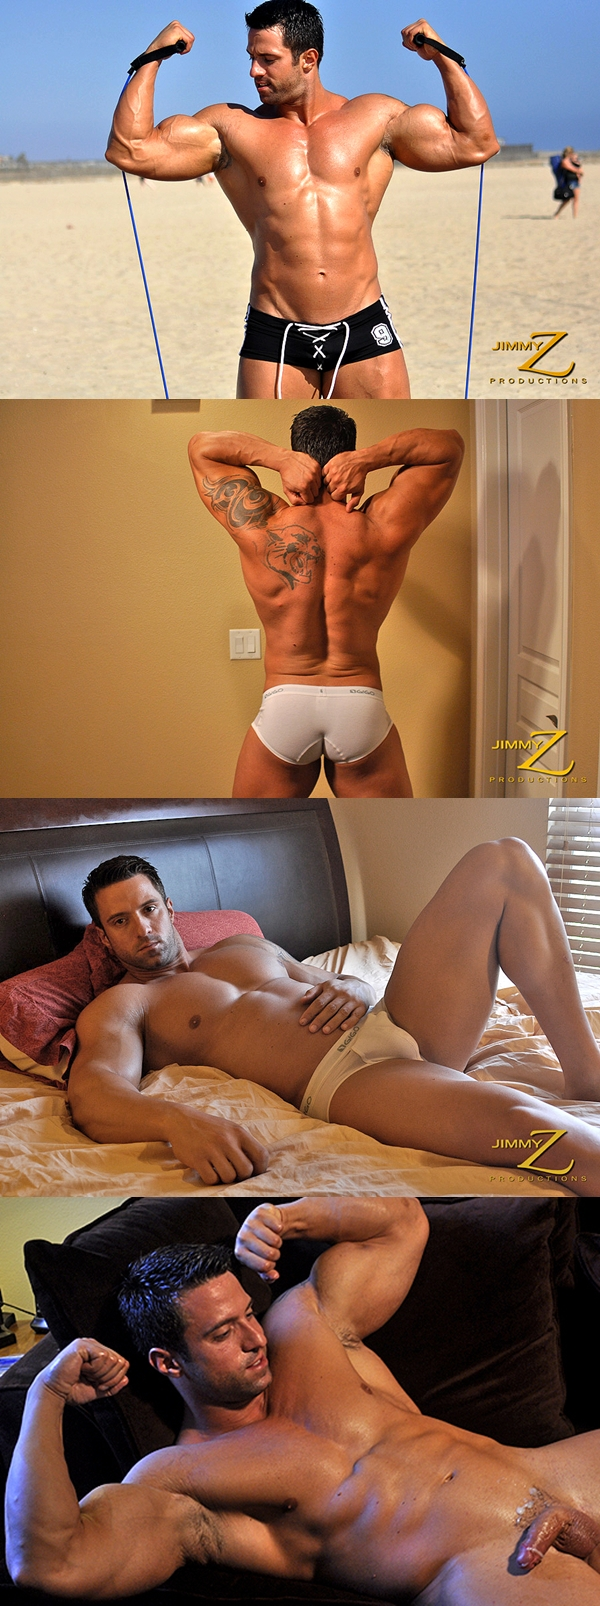 masculine and handsome Angel Diablo busts a nut at Jimmyzproductions 02